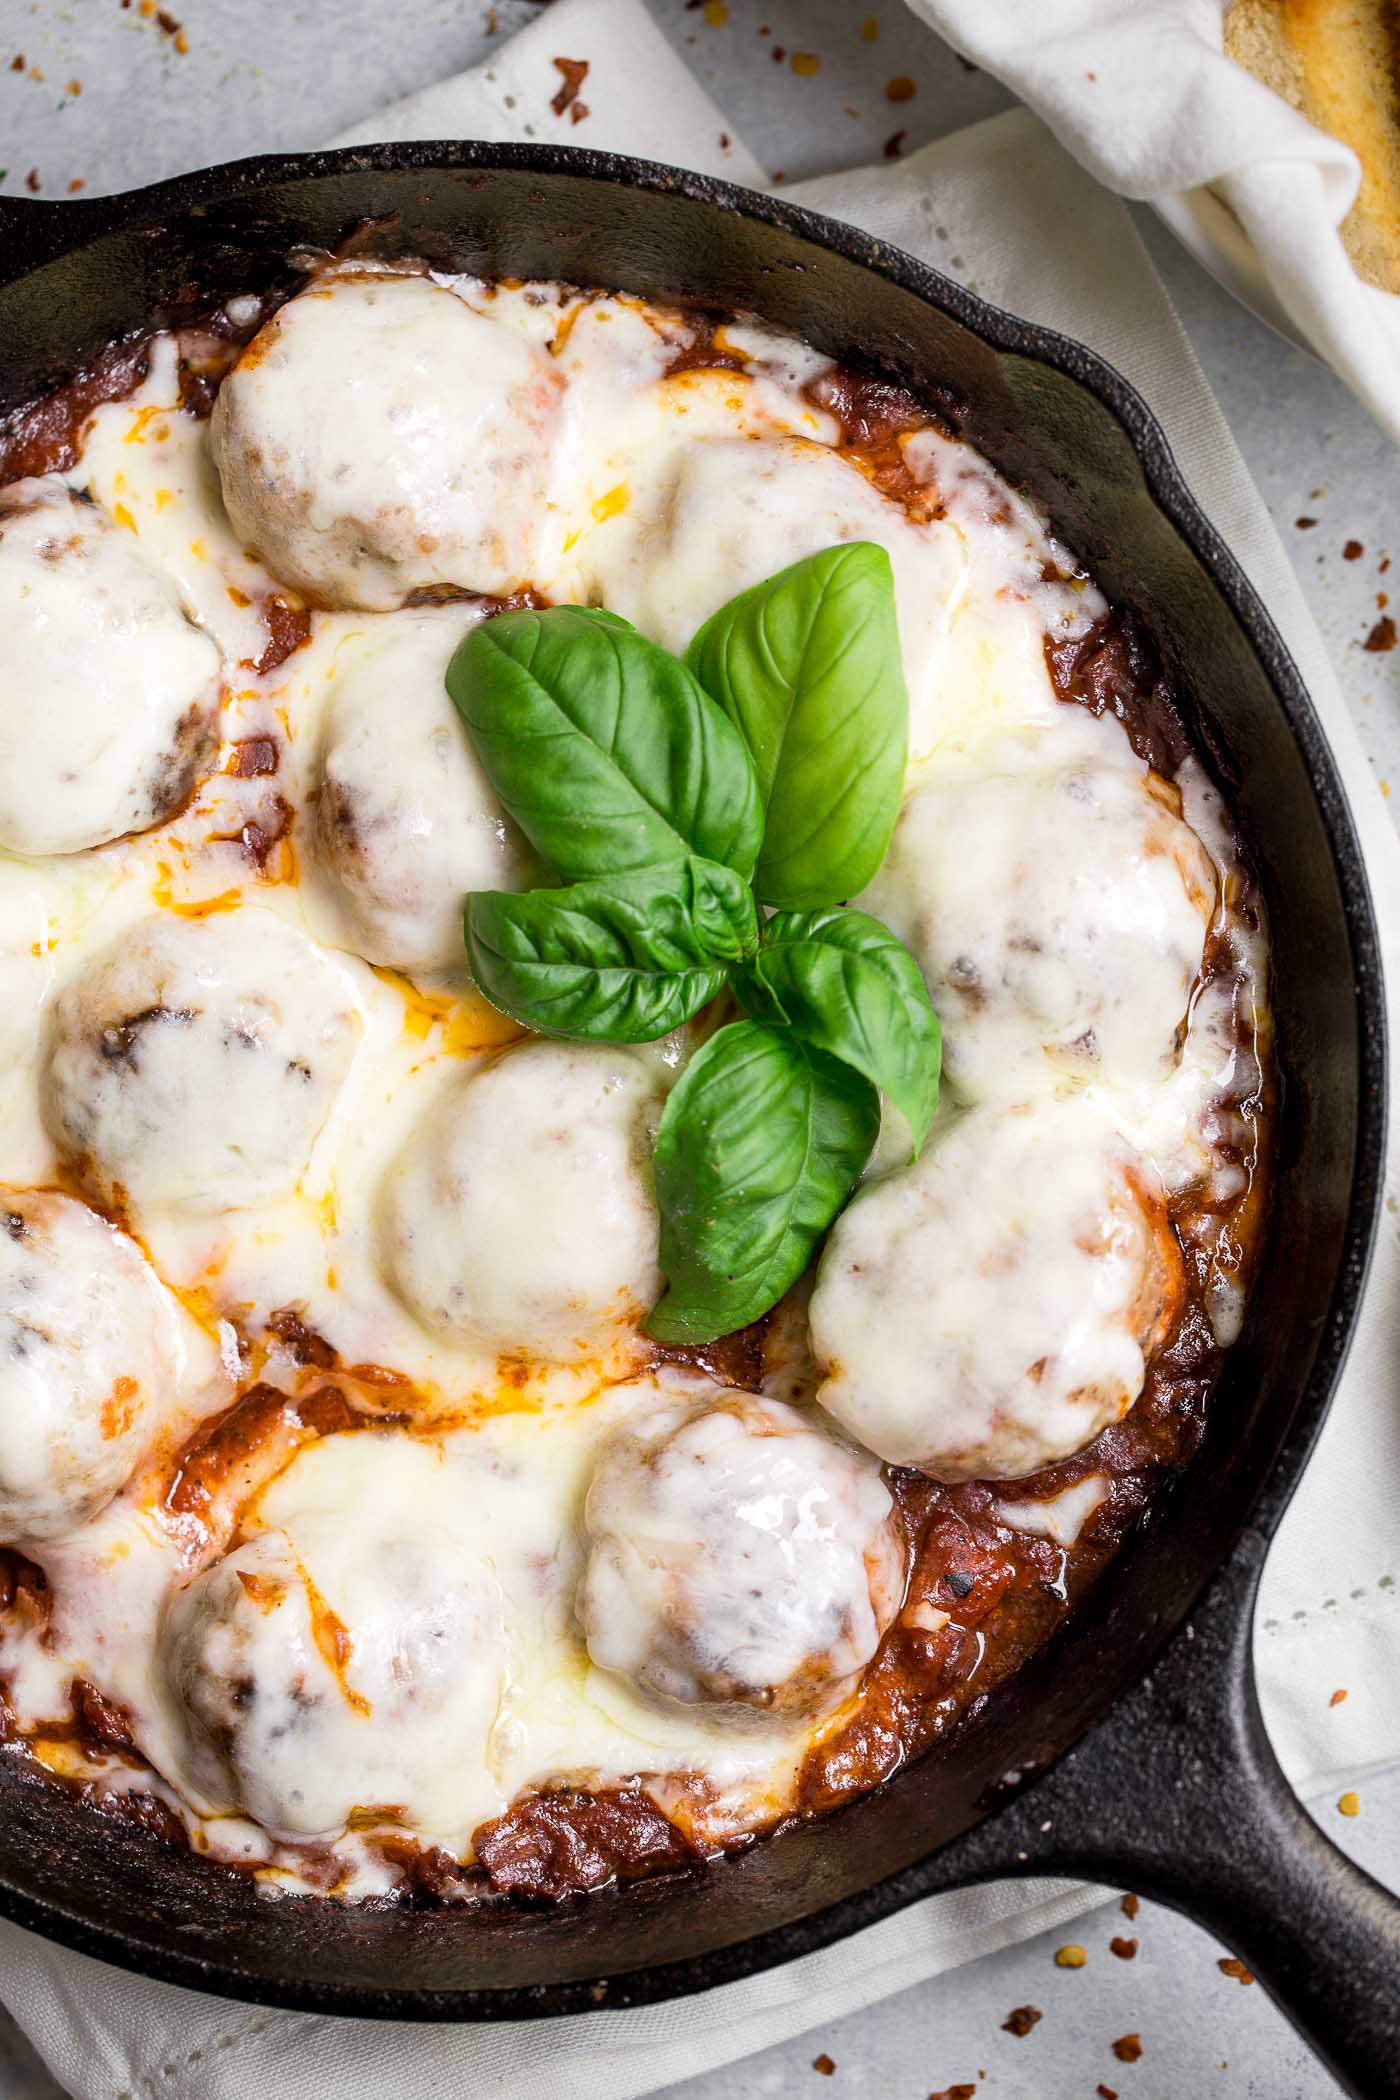 skillet chicken parmesan meatballs are an easy & healthy weeknight skillet dinner that easily doubles as the perfect game day treat. the best tender chicken meatballs are seared cooked in a quick homemade tomato sauce & covered in melty provolone cheese. one-pan weeknight dinner for the win! #playswellwithbutter #chickenparmesan #chickenmeatballs #easyrecipe #healthyrecipe #gamedaysnack